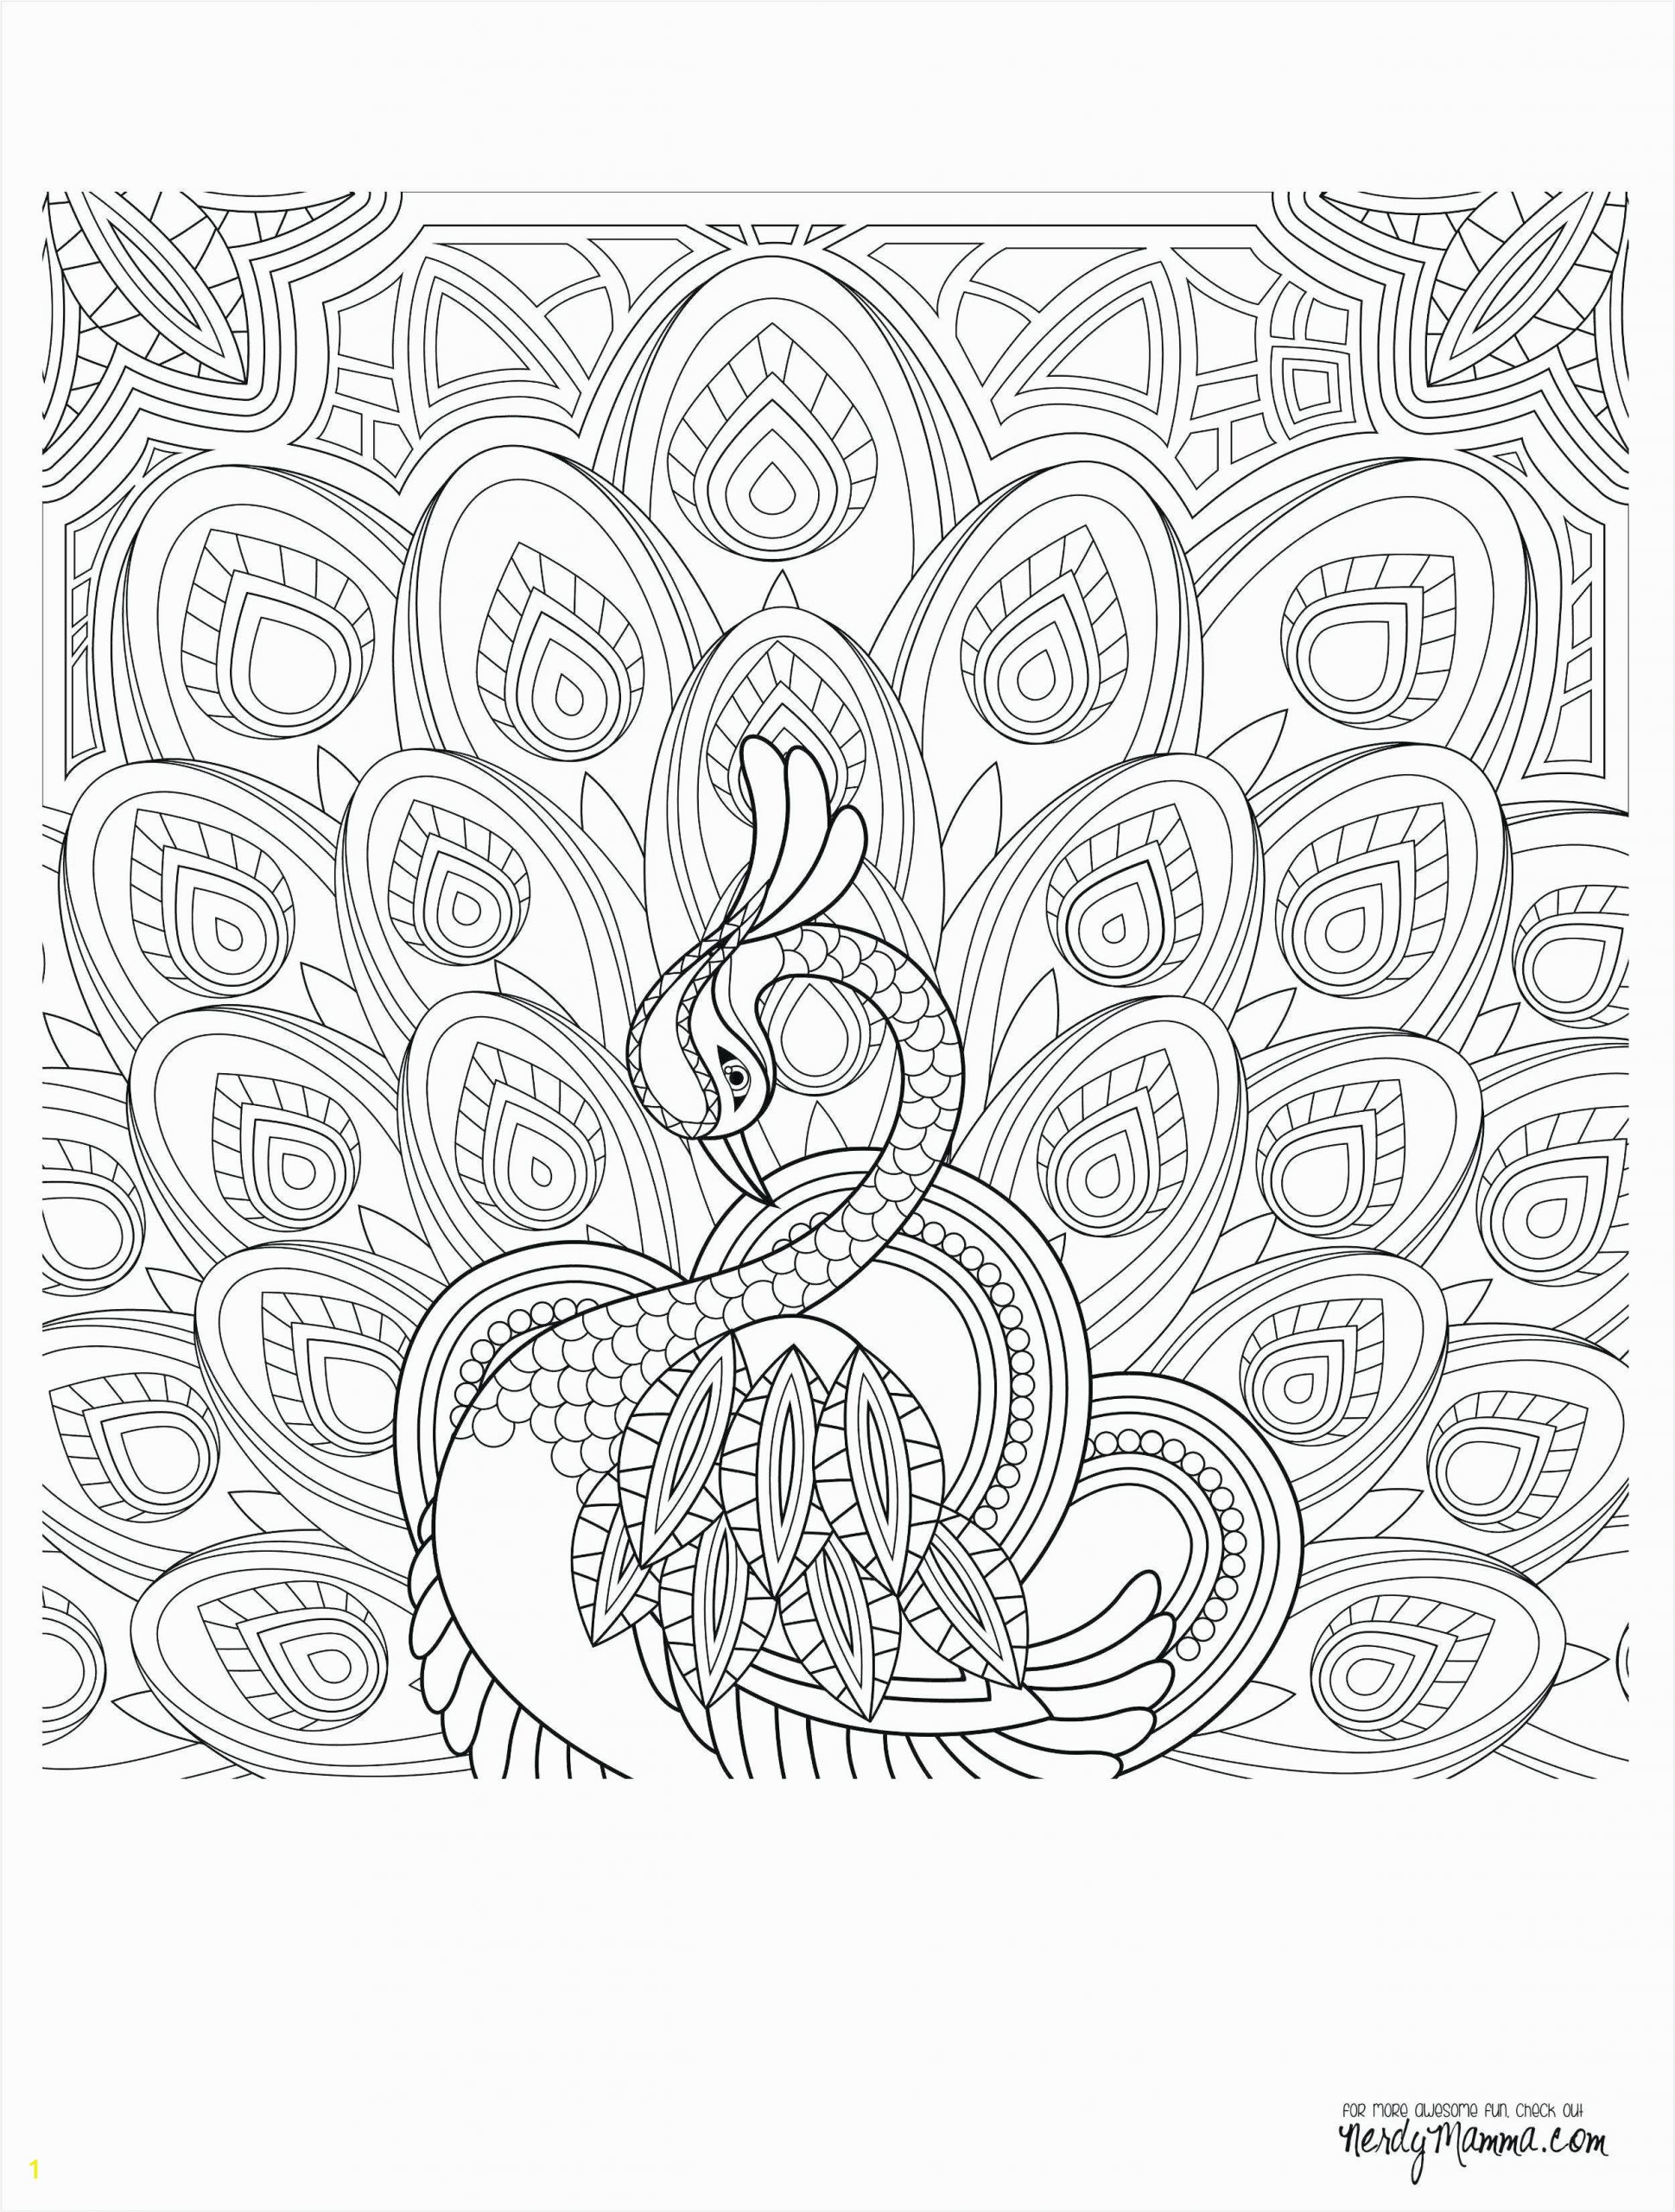 days of creation coloring pages elegant book dot art free cortexcolor co free